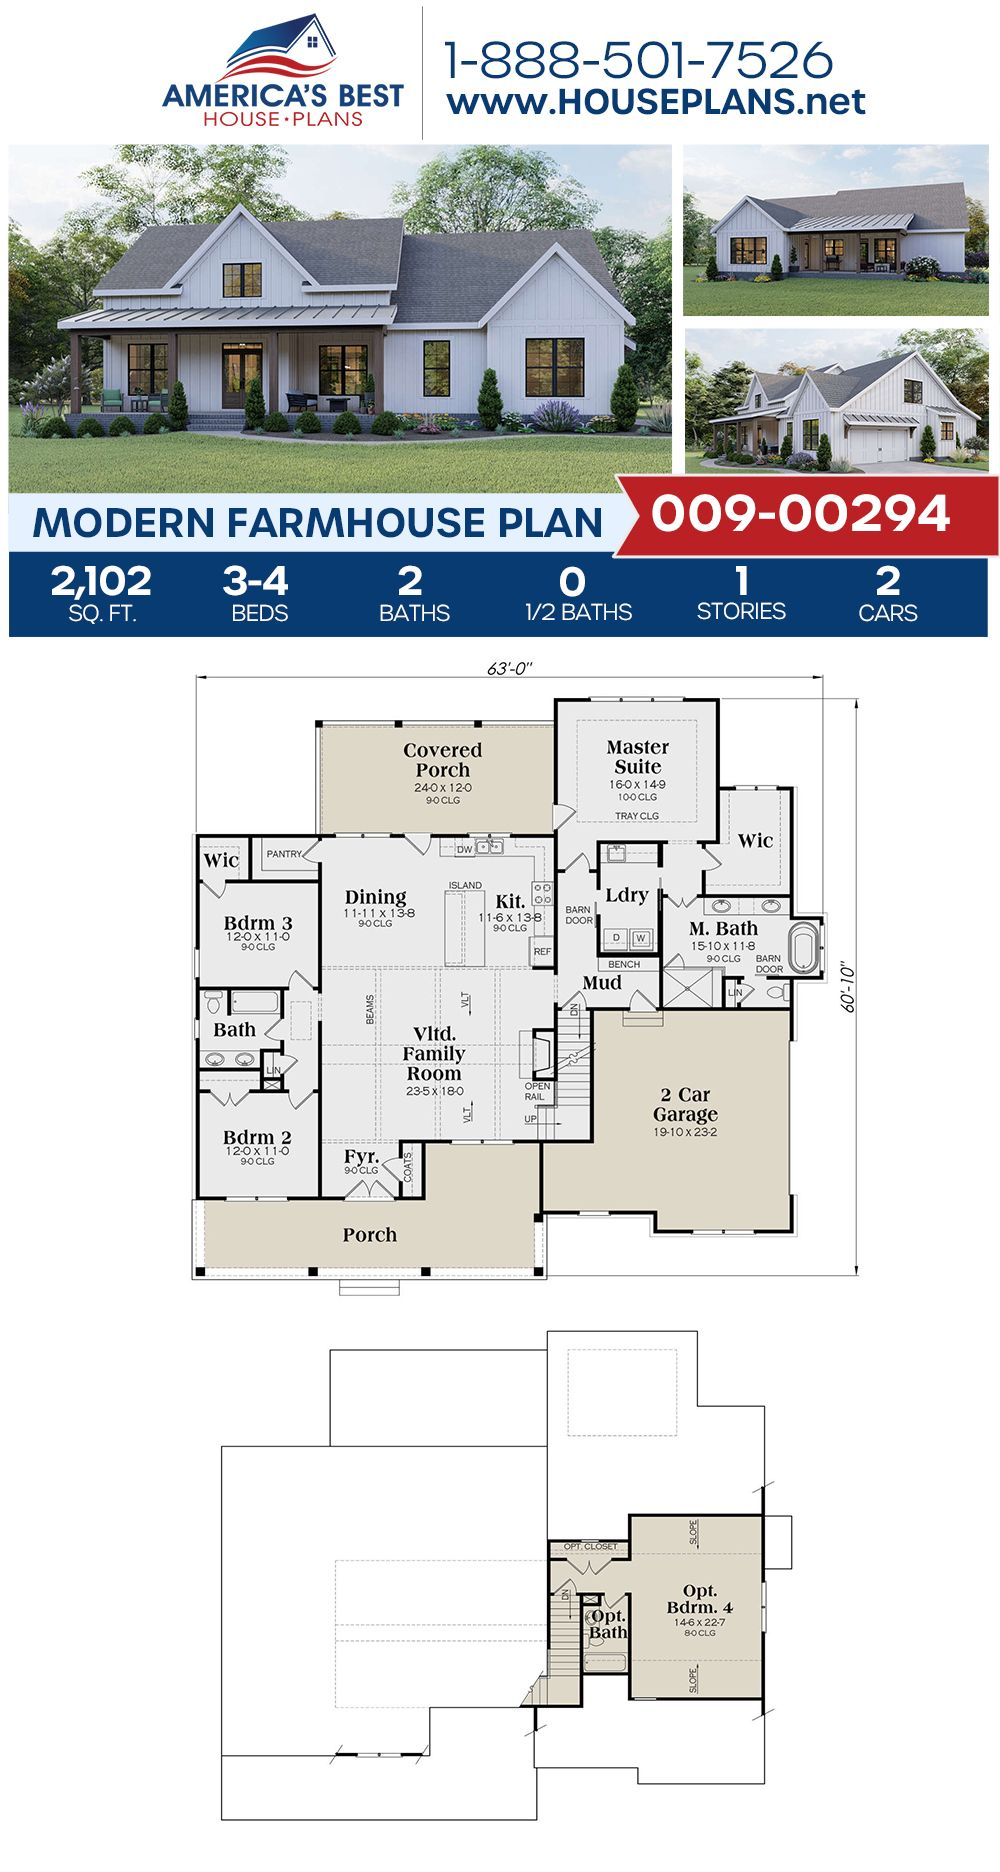 House Plan 009 00294 Modern Farmhouse Plan 2 102 Square Feet 3 4 Bedrooms 2 Bathrooms Modern Farmhouse Plans Farmhouse Plans House Plans Farmhouse